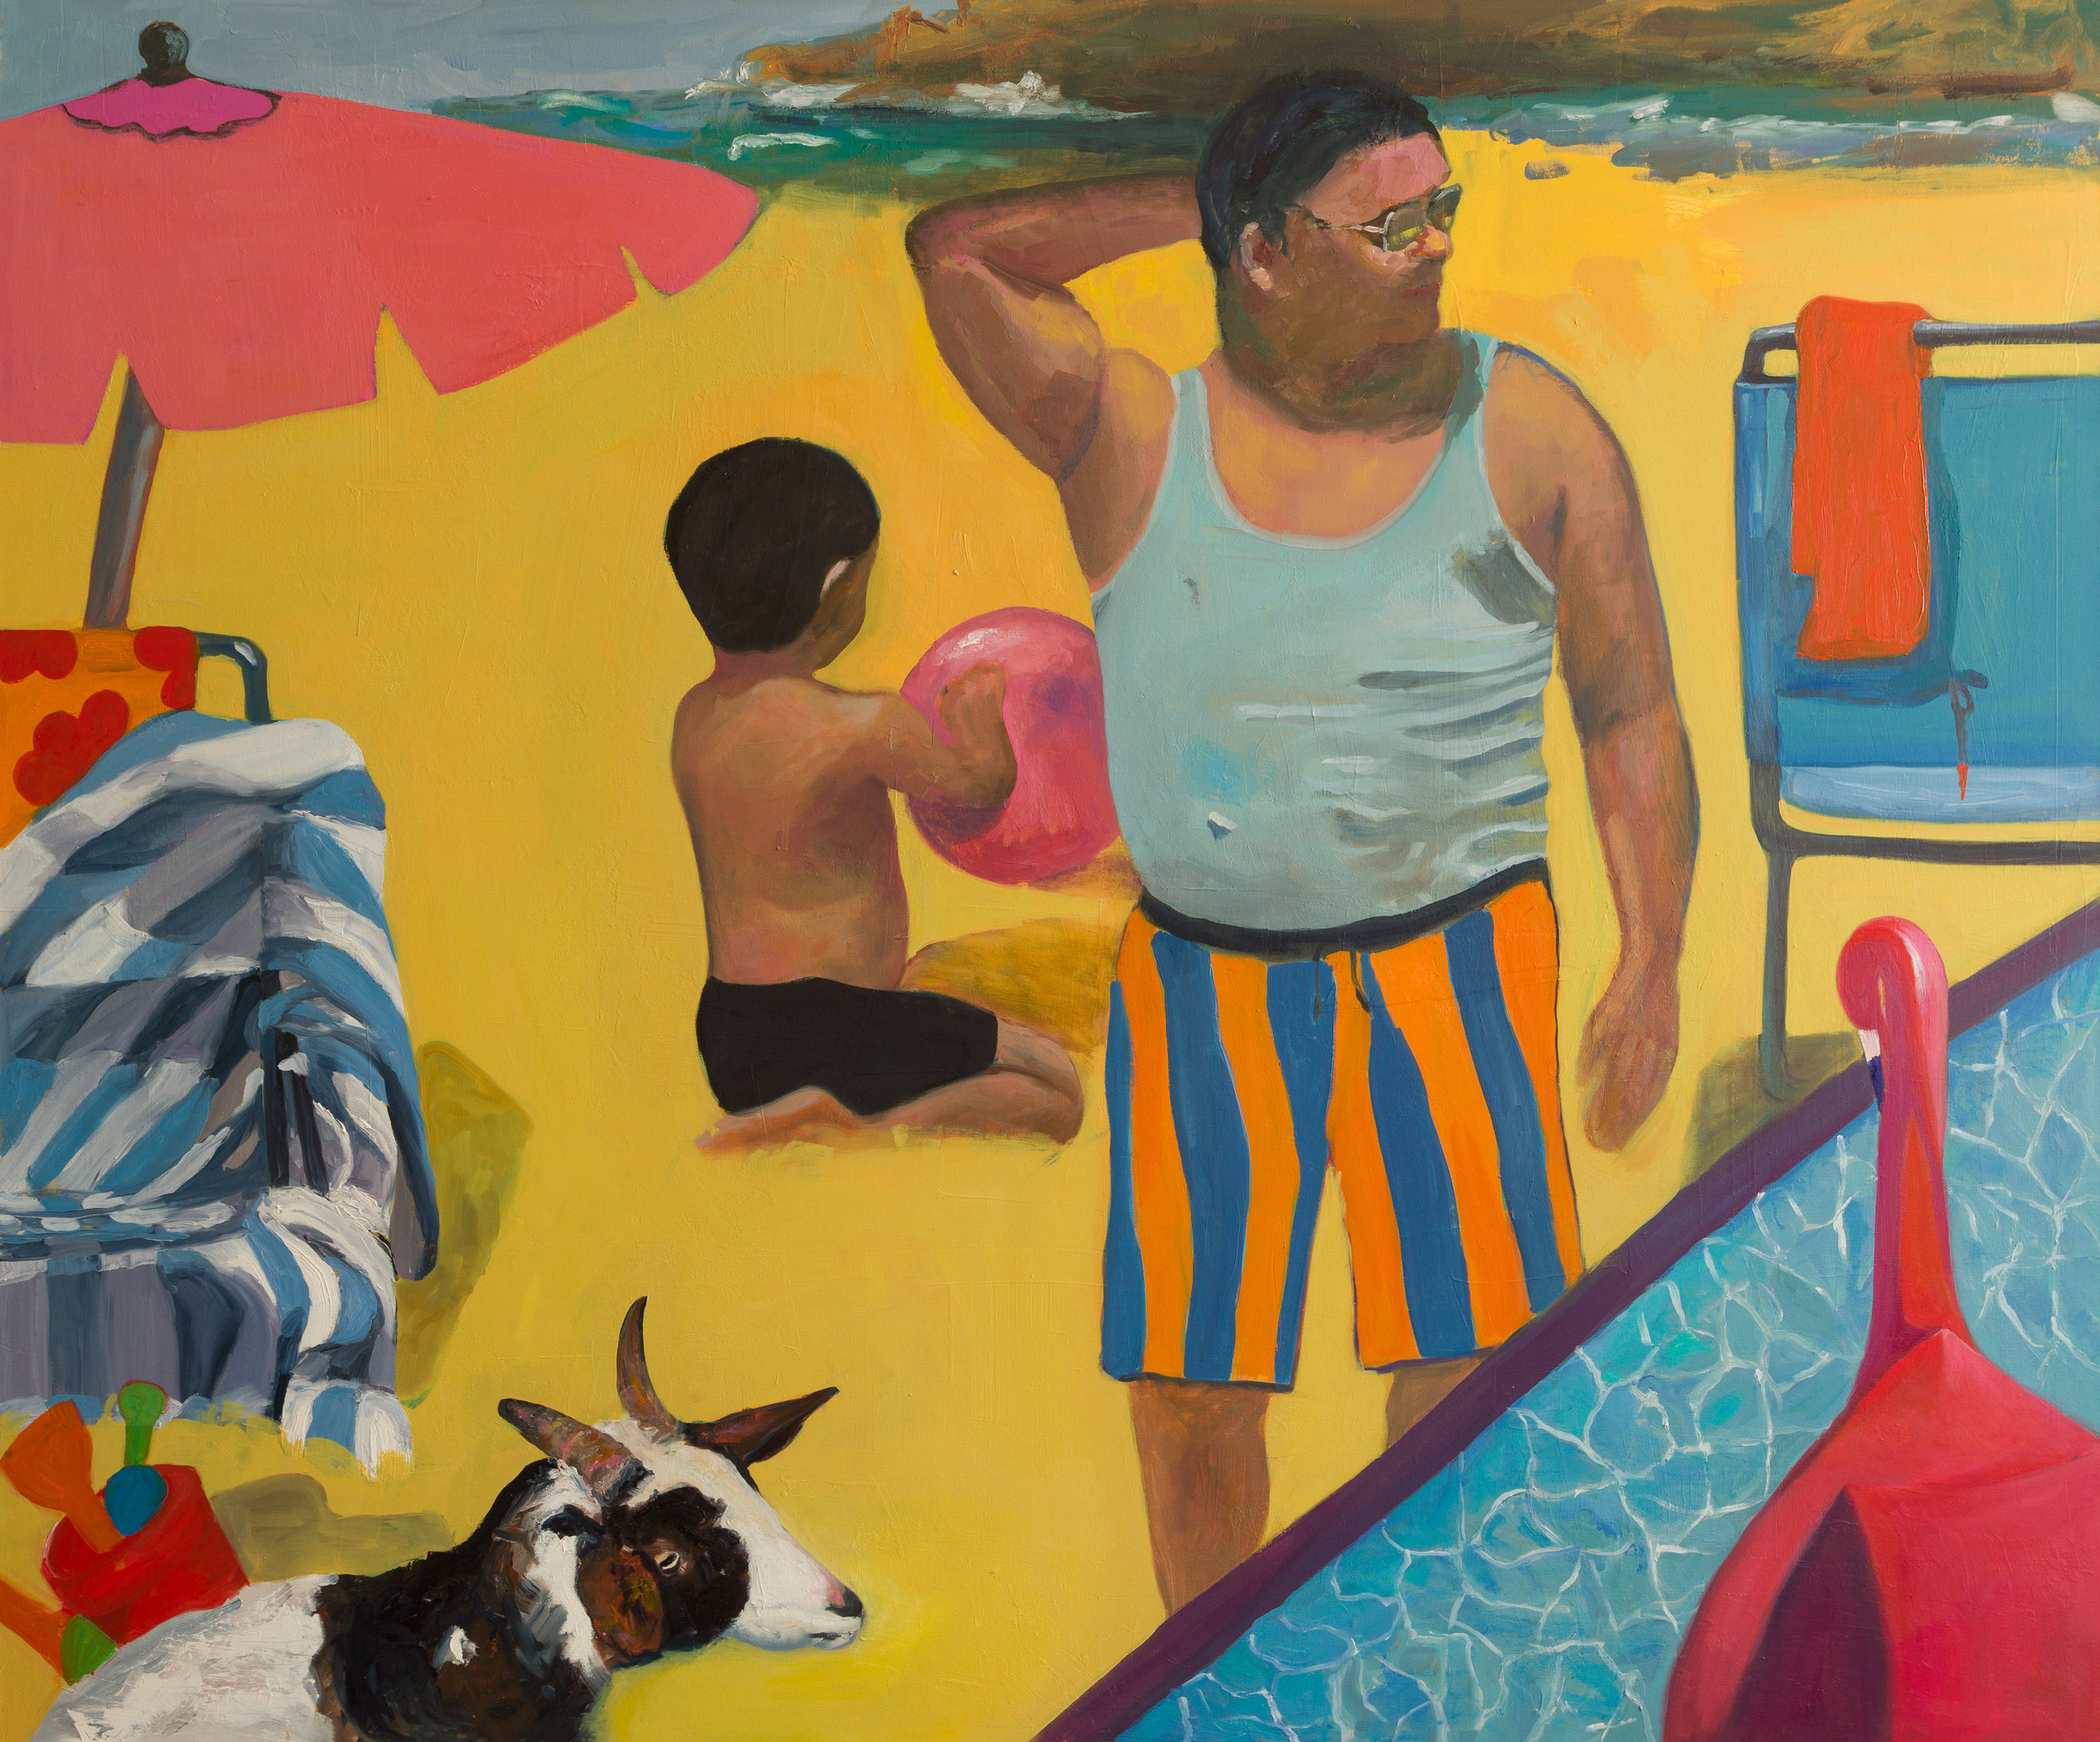 The Bathers 2, Oil on Canvas, 60x72 inches, 2018